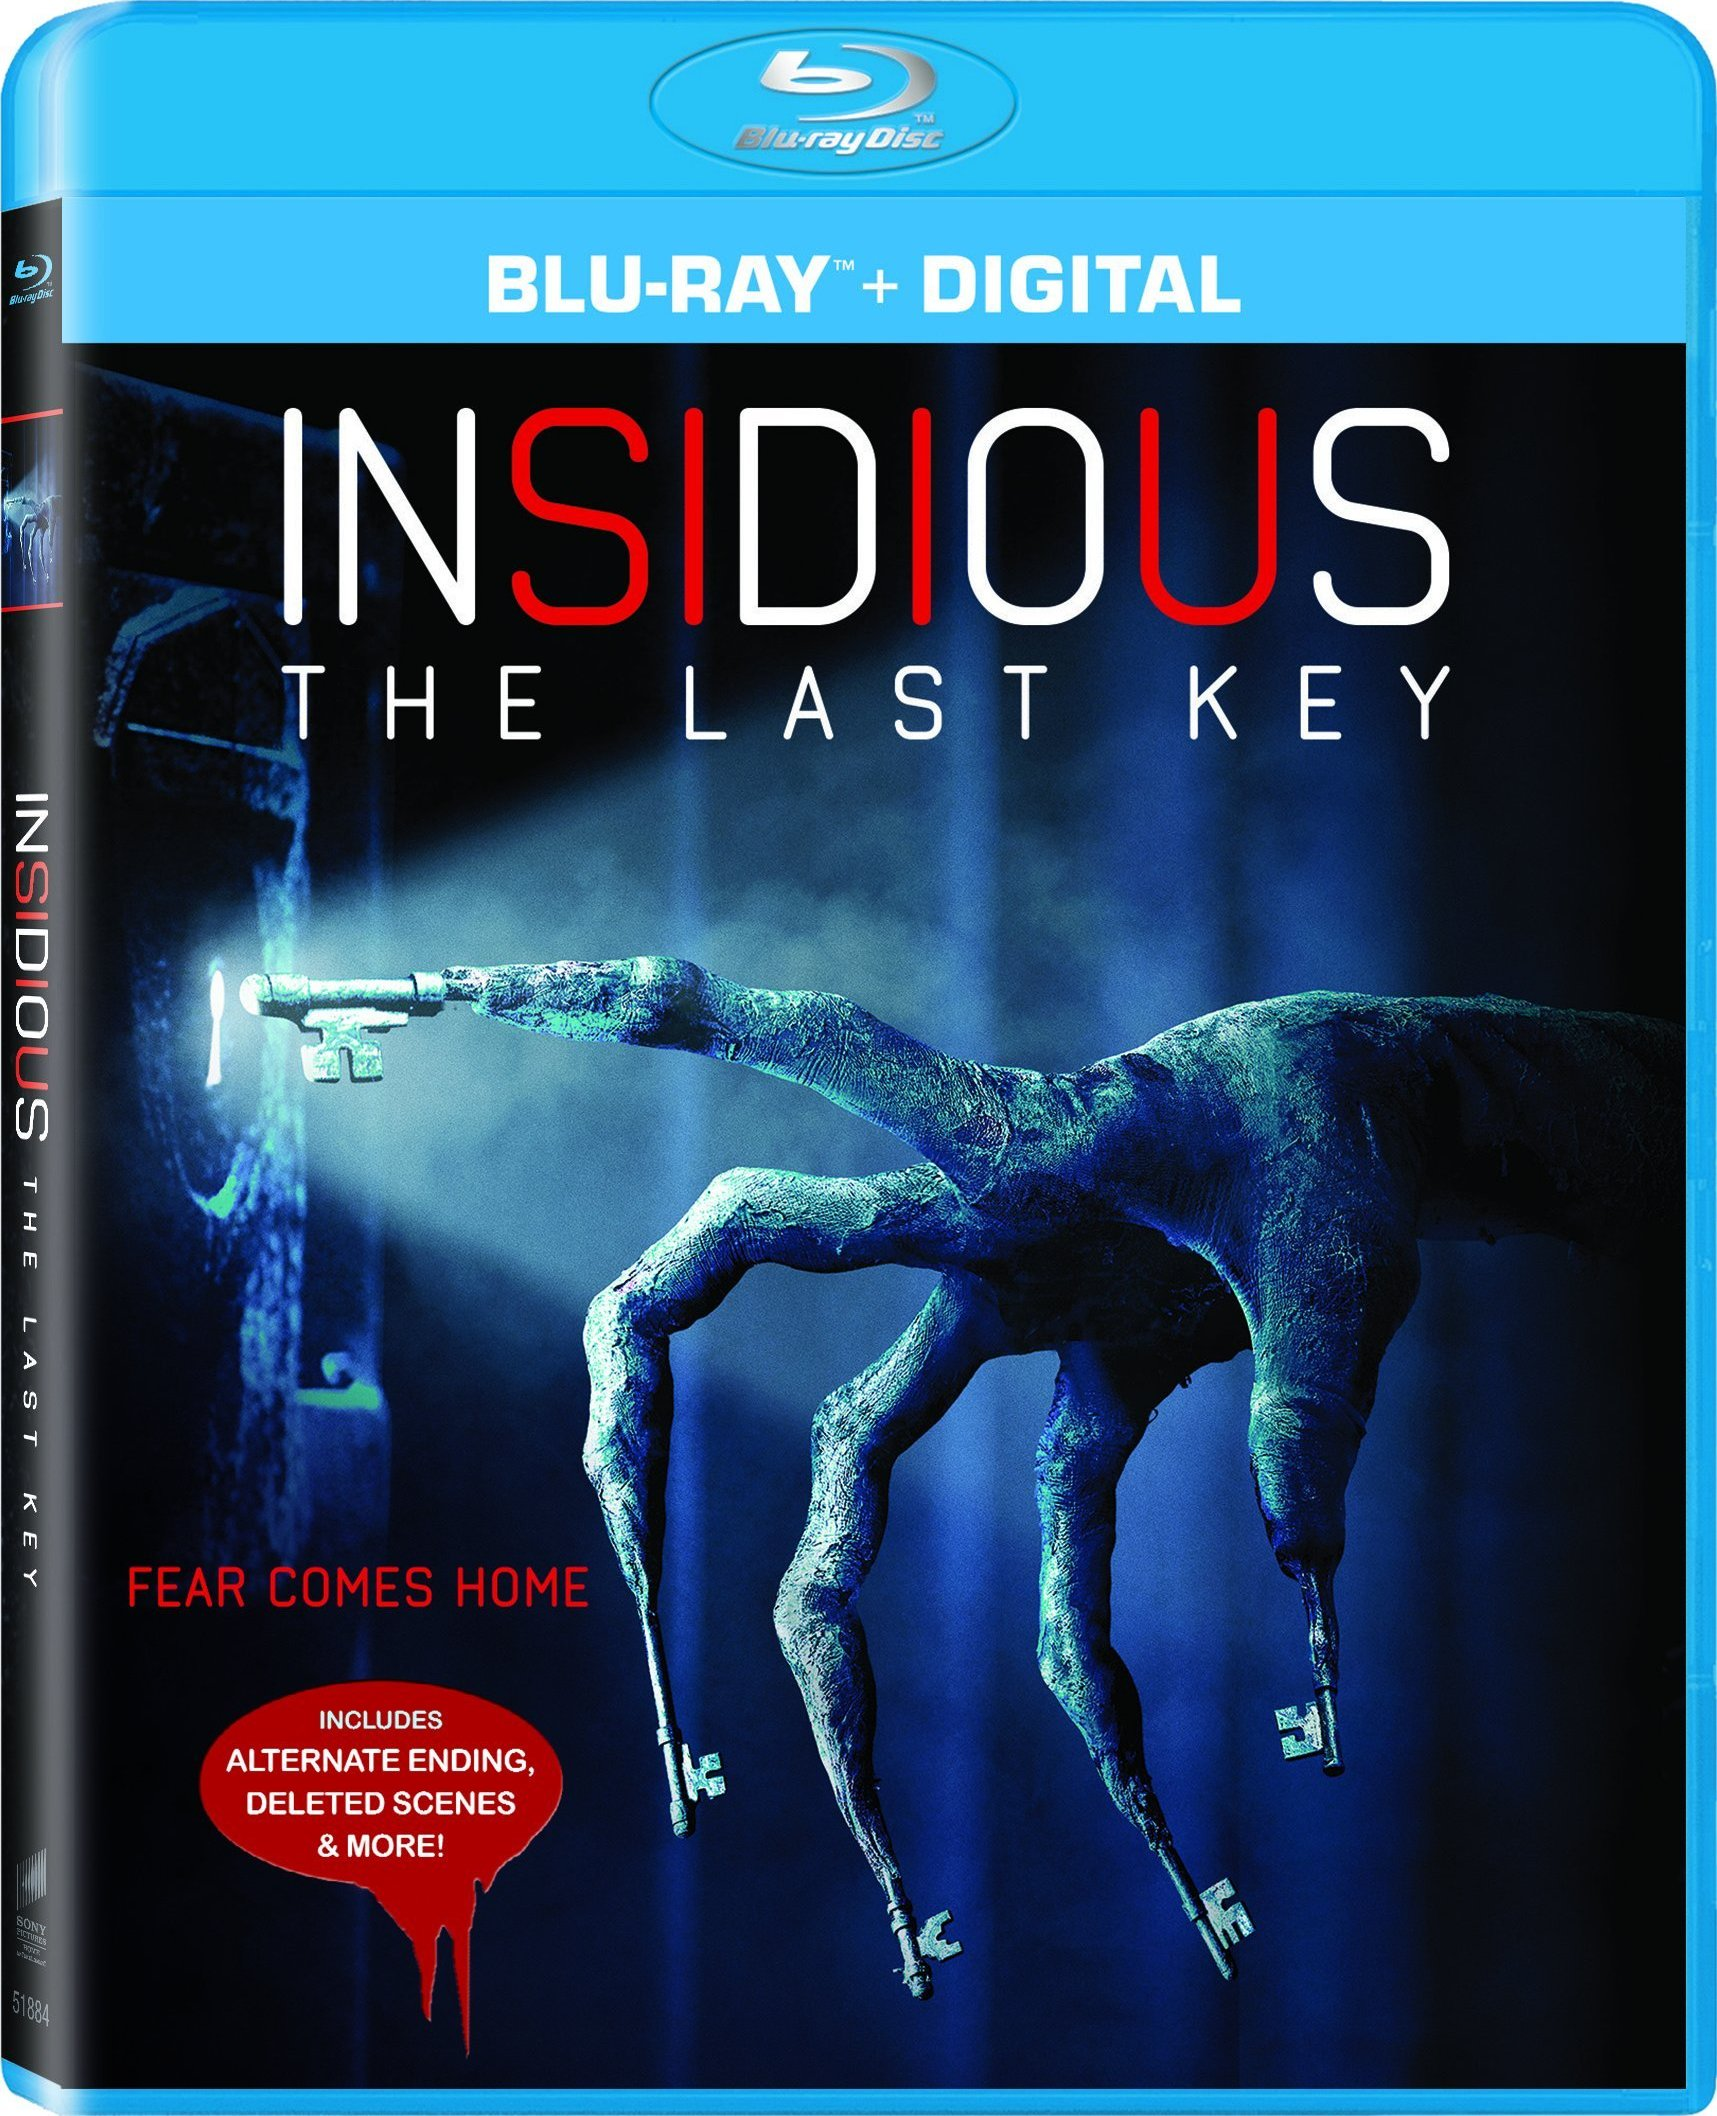 Insidious: The Last Key (Chapter 4)(2018) Blu-ray